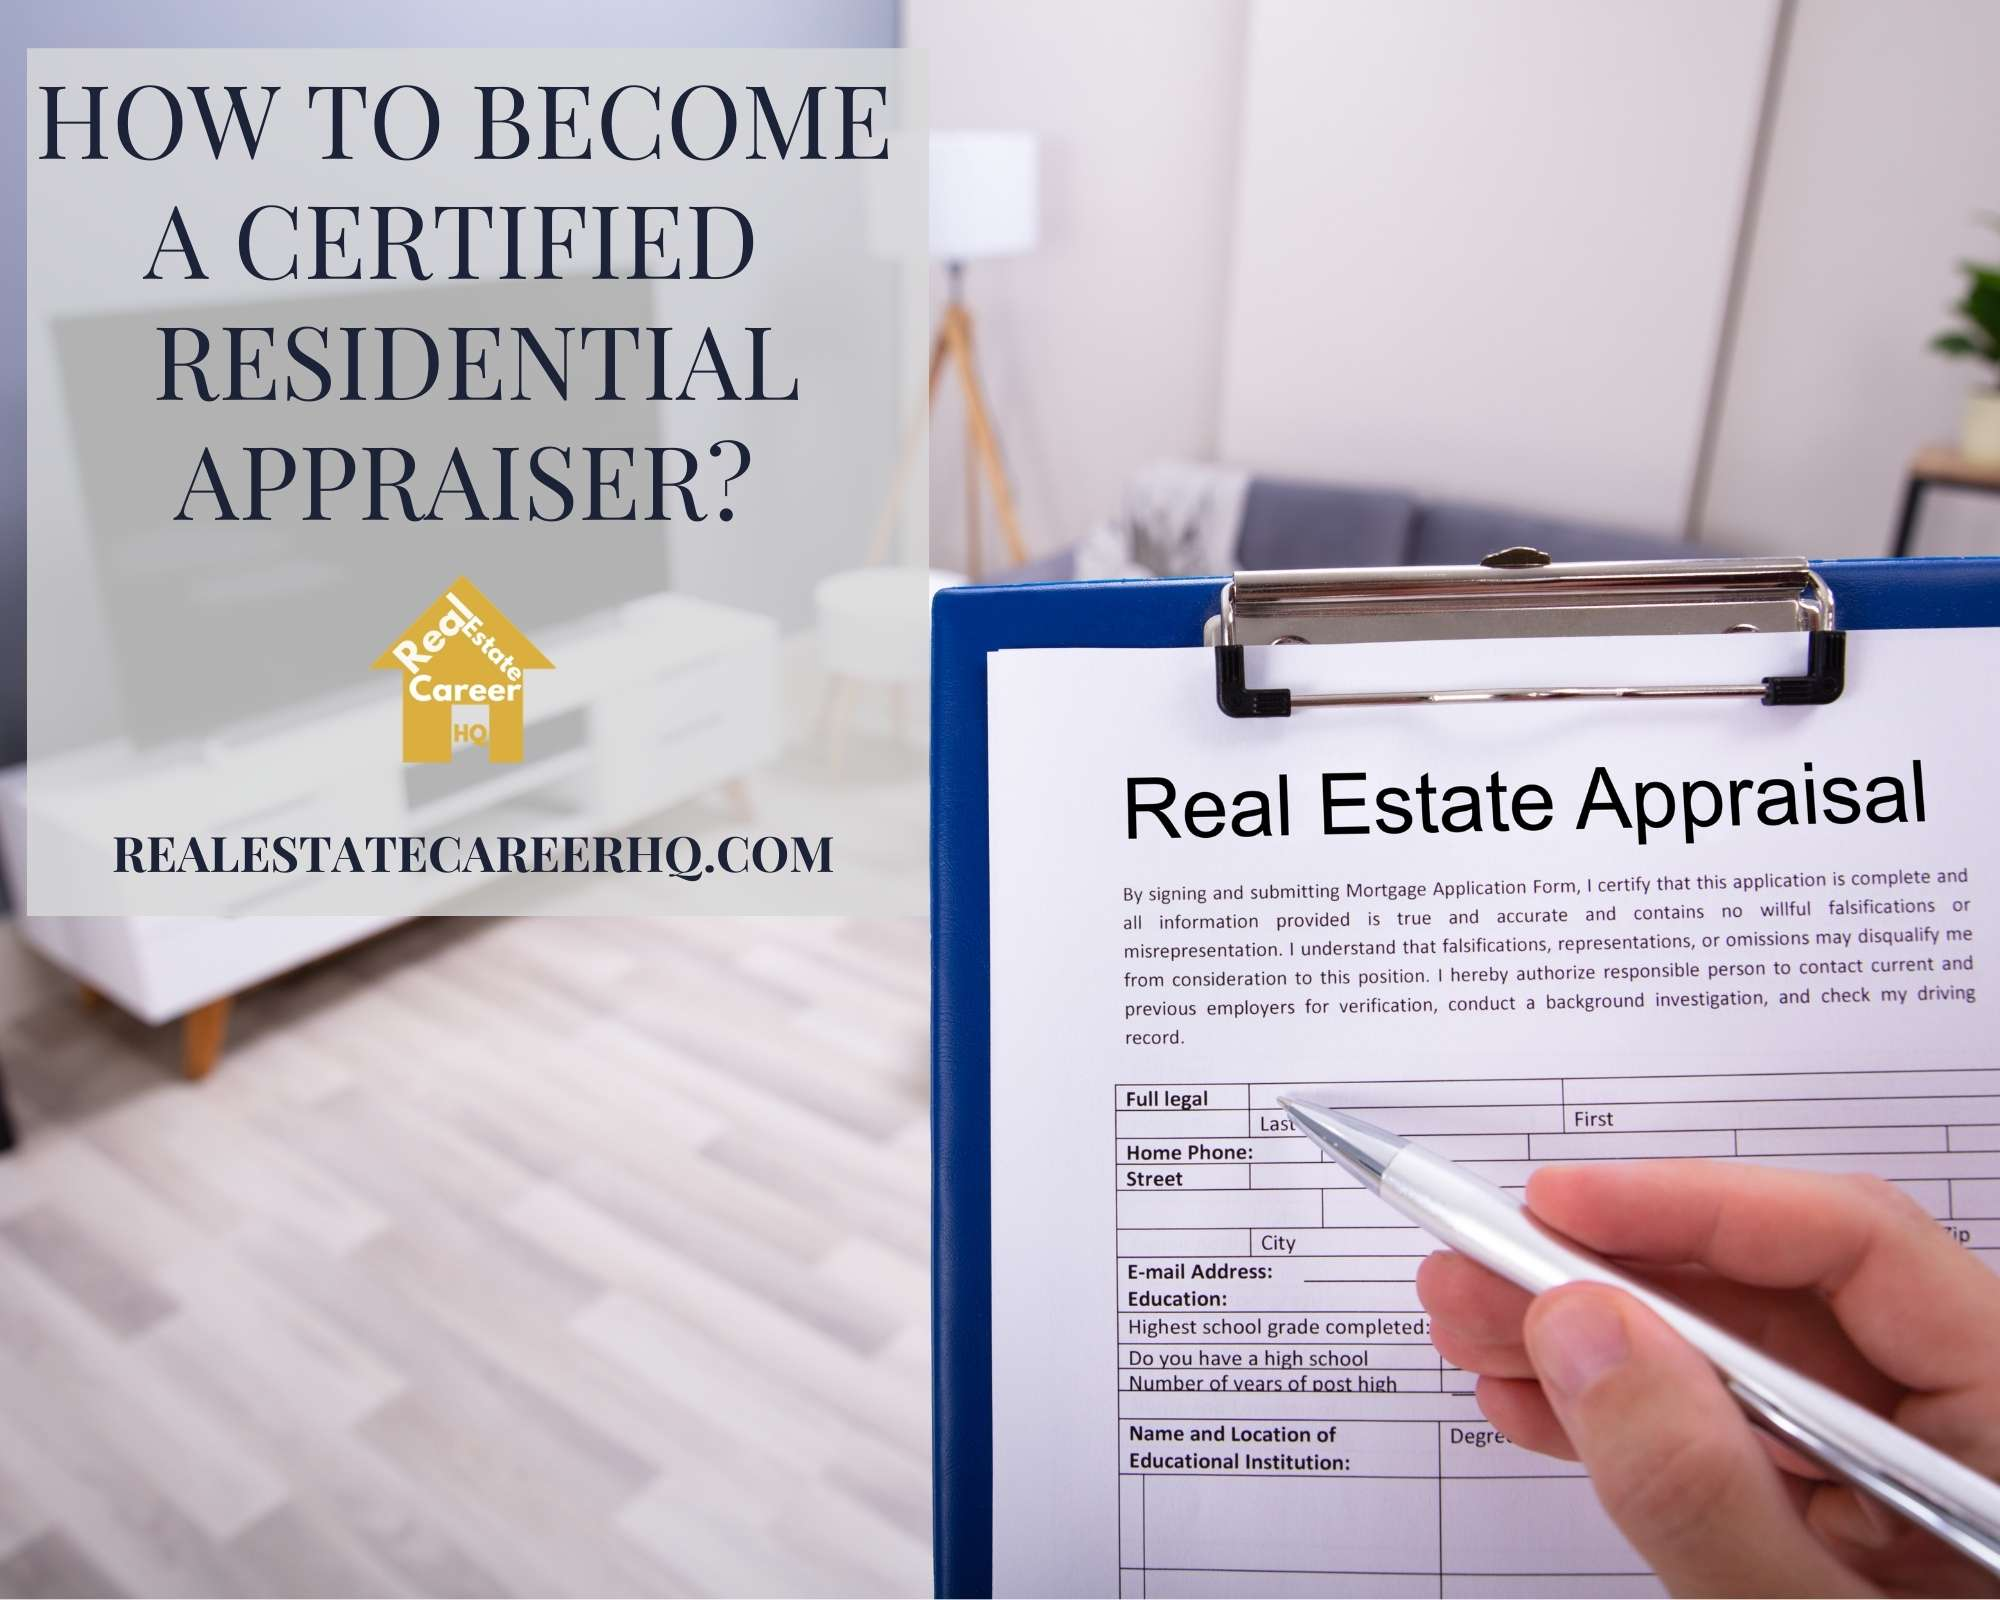 What is a Certified Residential Appraiser?